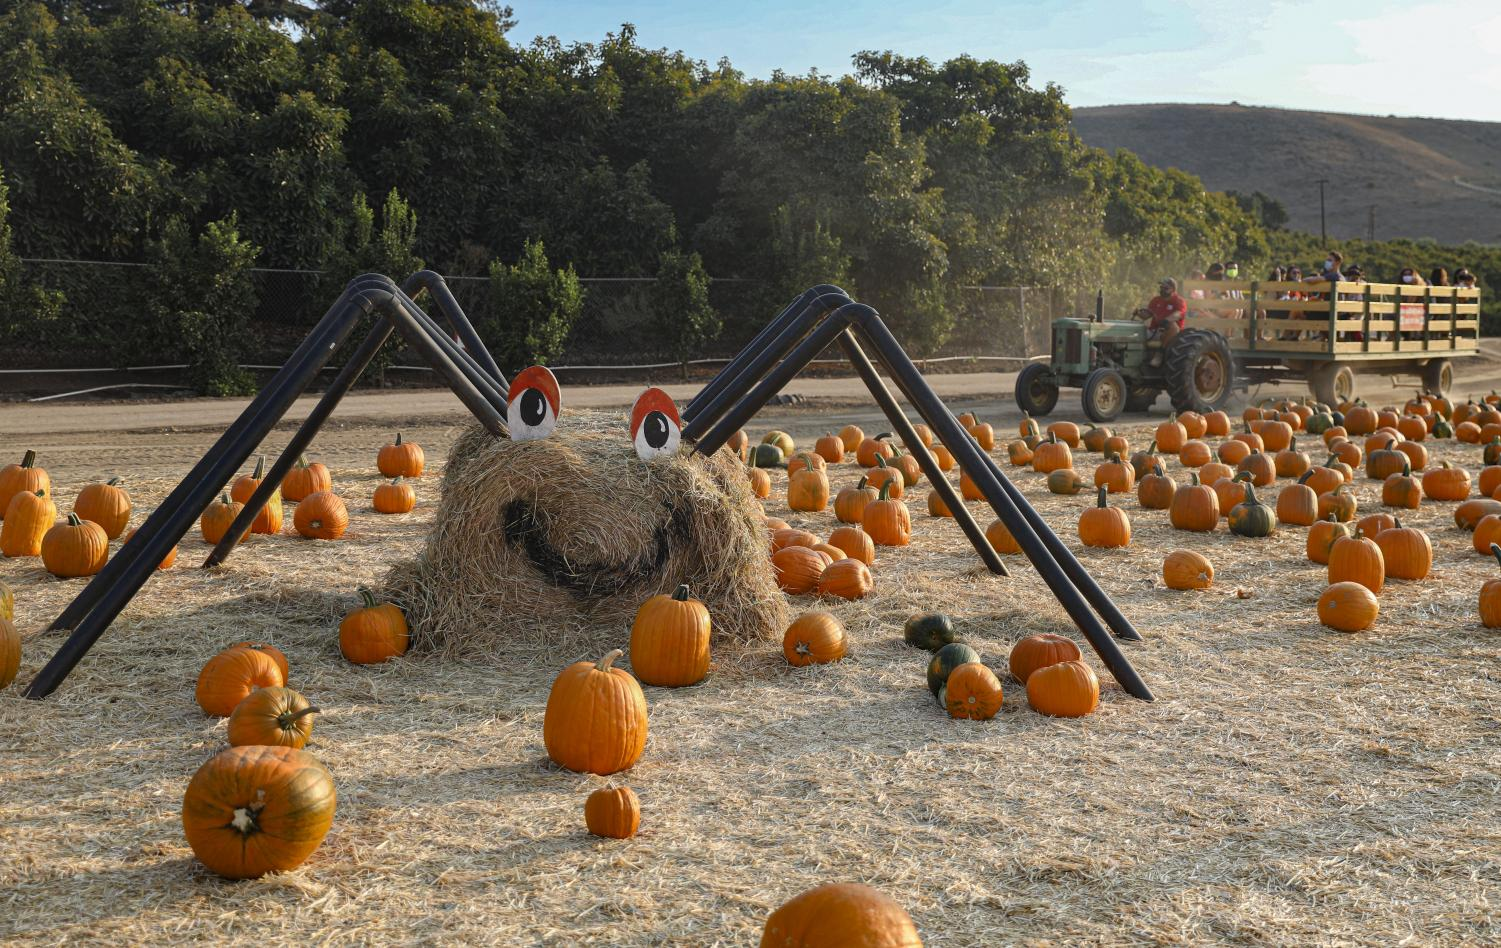 A spider made of hay lies in the field of pumpkins ad a tractor full of guests pass by on Oct. 15, in Moorpark, CA.